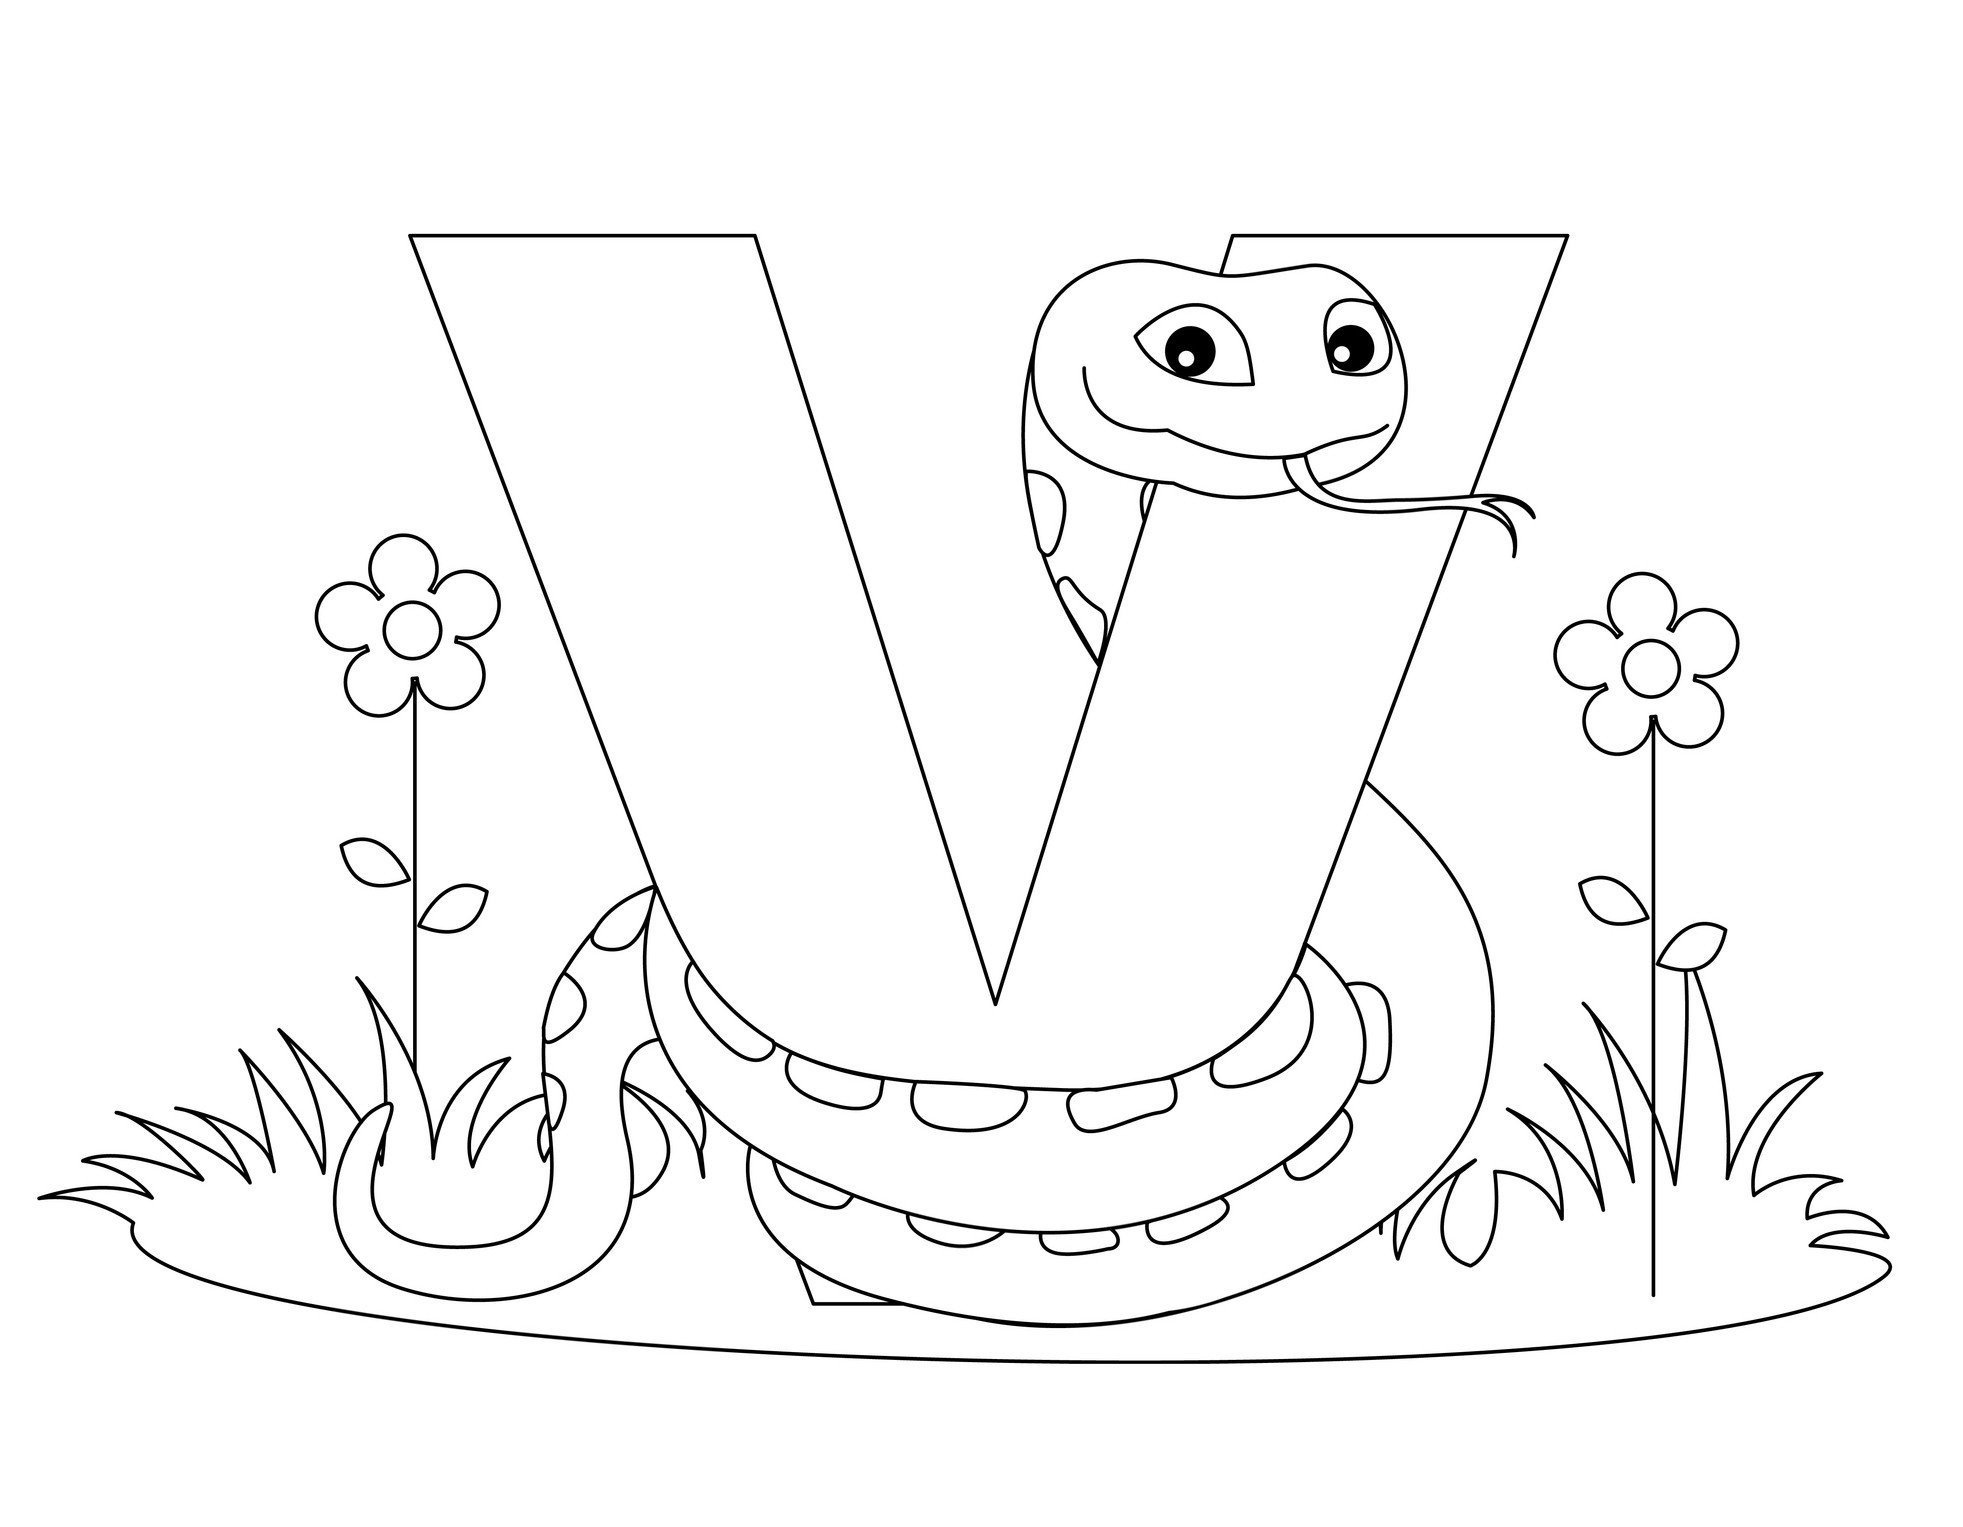 toddler abc coloring pages toddler abc coloring pages coloring abc pages toddler